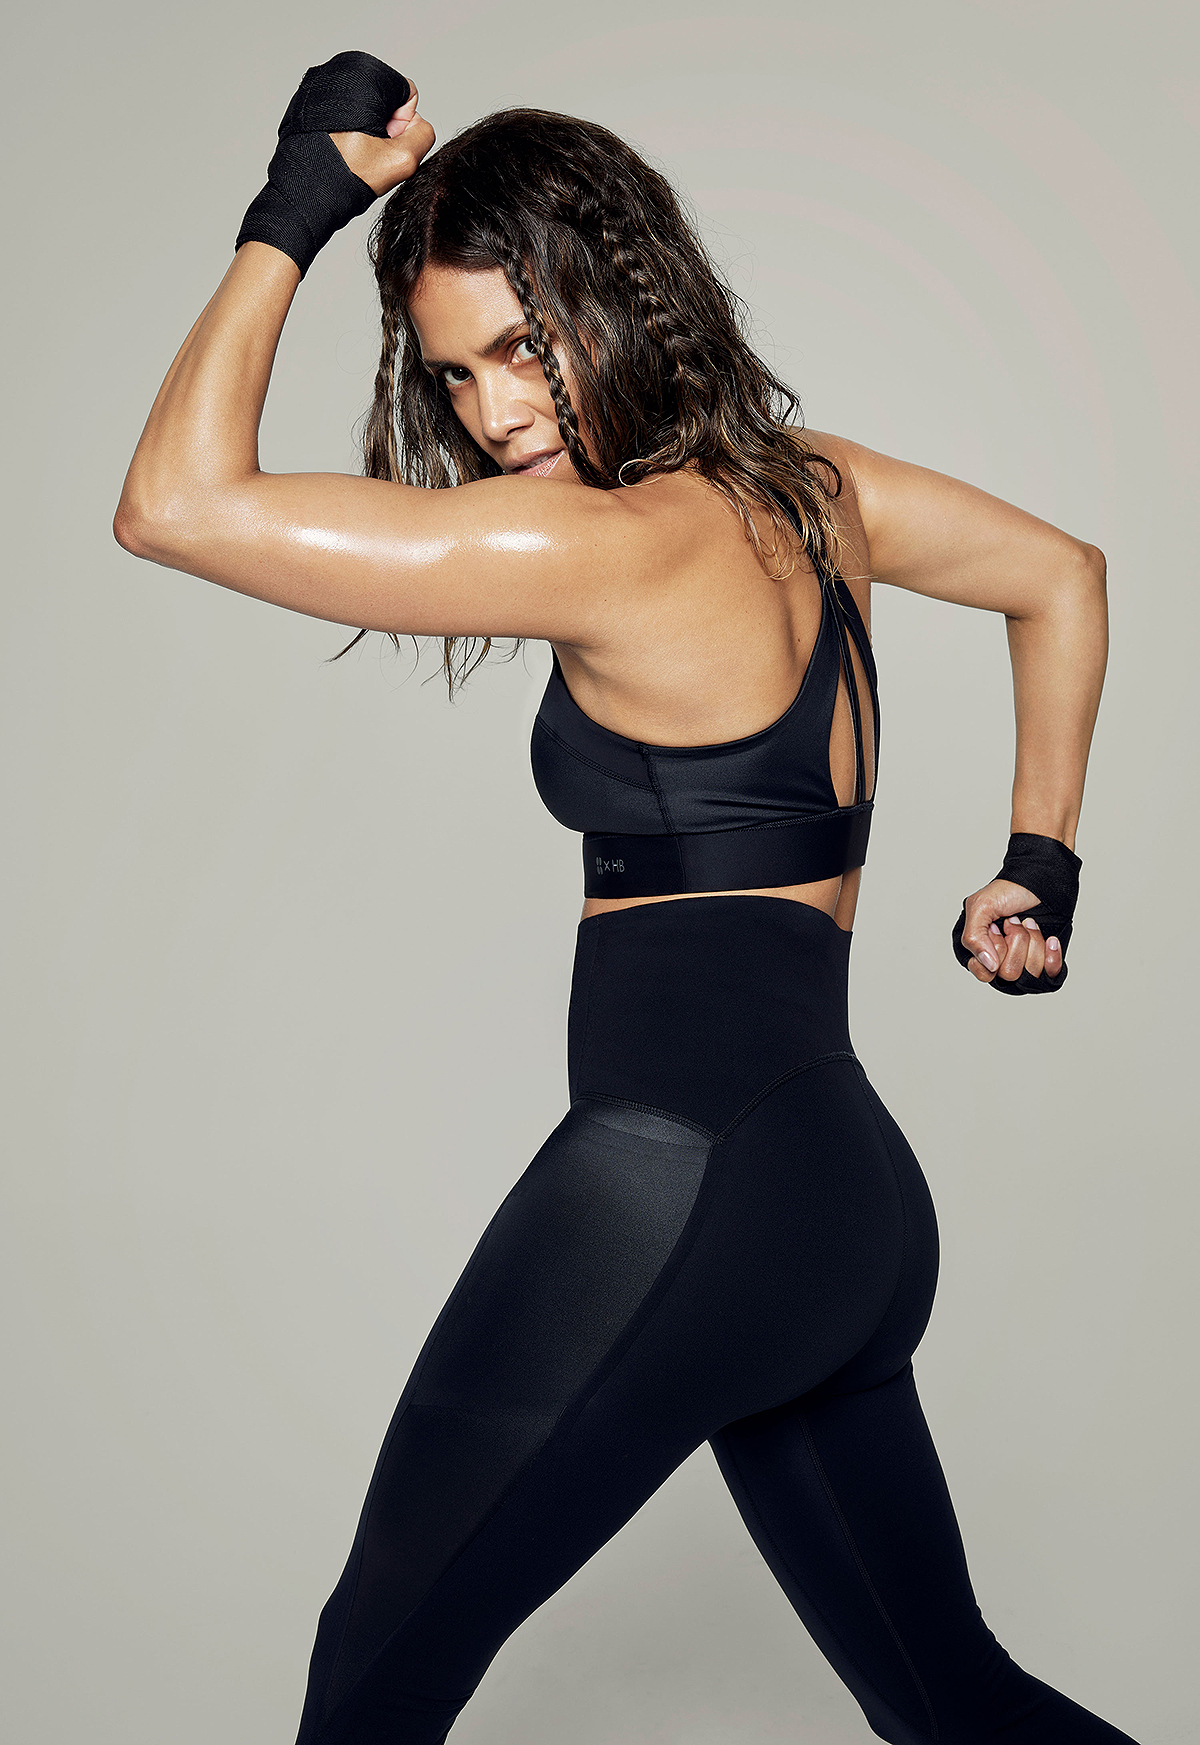 Halle Berry is Launching her First Activewear Collab with Sweaty Betty